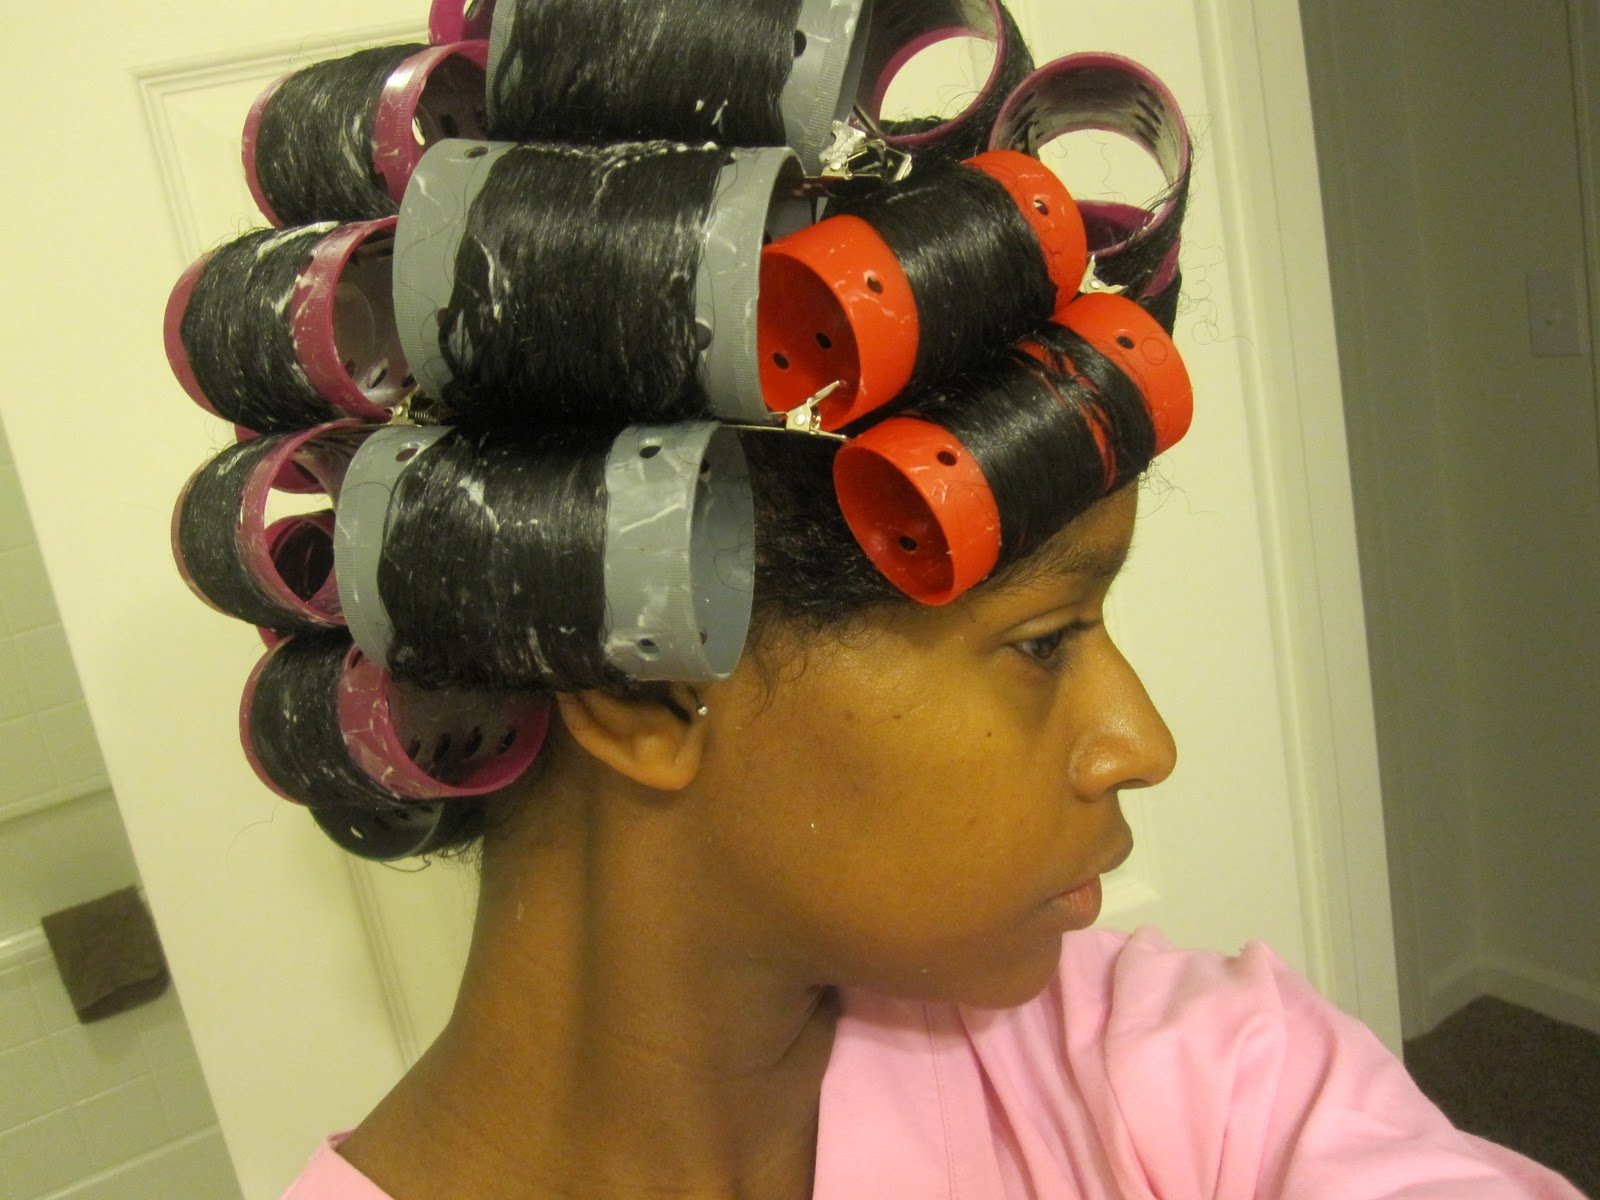 MahoganyCurls' Roller Set How-to